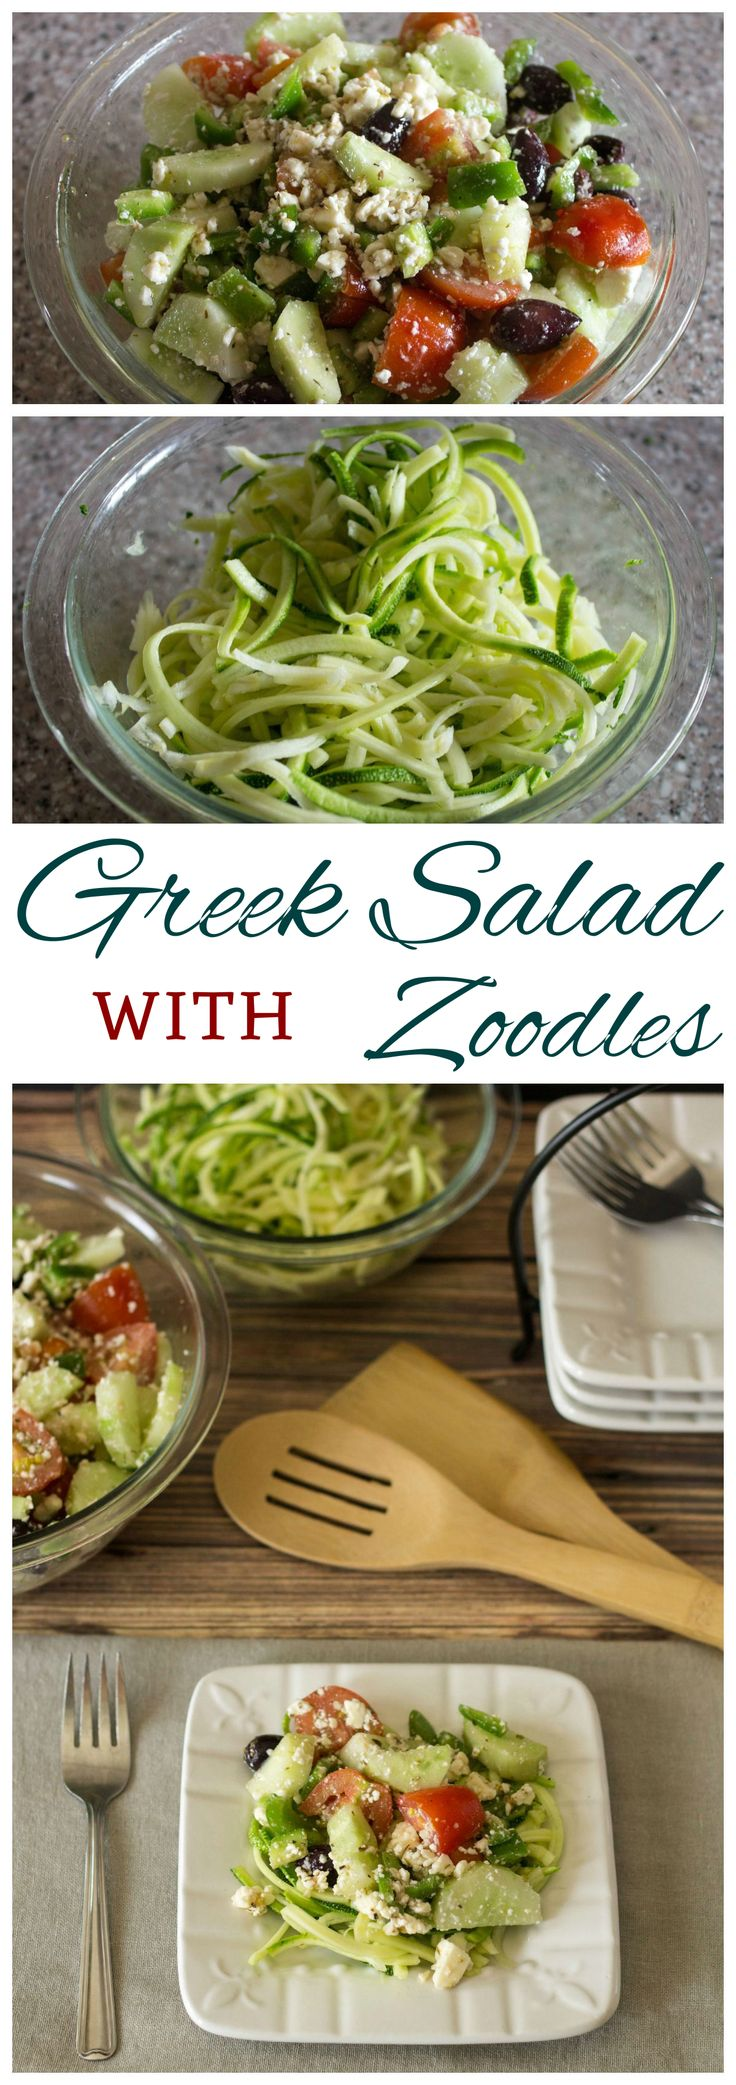 Low Carb Greek salad is a great way to use up garden vegetables. Toss the basic ingredients in Greek salad dressing then serve over fresh gluten free zucchini zoodle noodles.